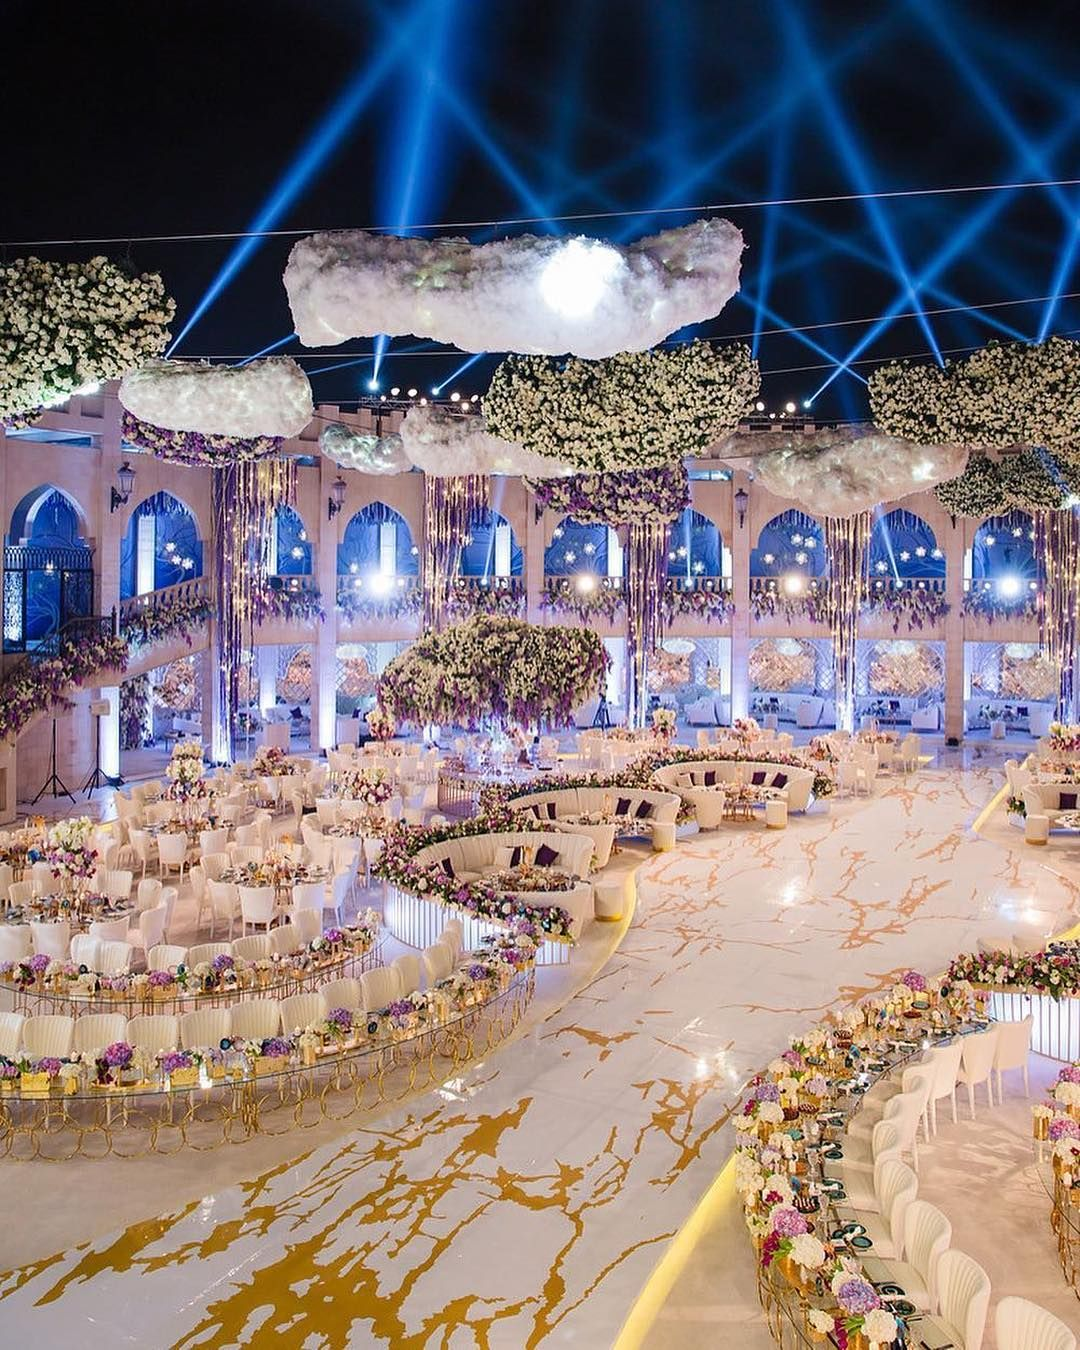 Luxury Wedding Reception With A Perfect And Awesome: Between The Unique Table Shapes And Suspended Floral